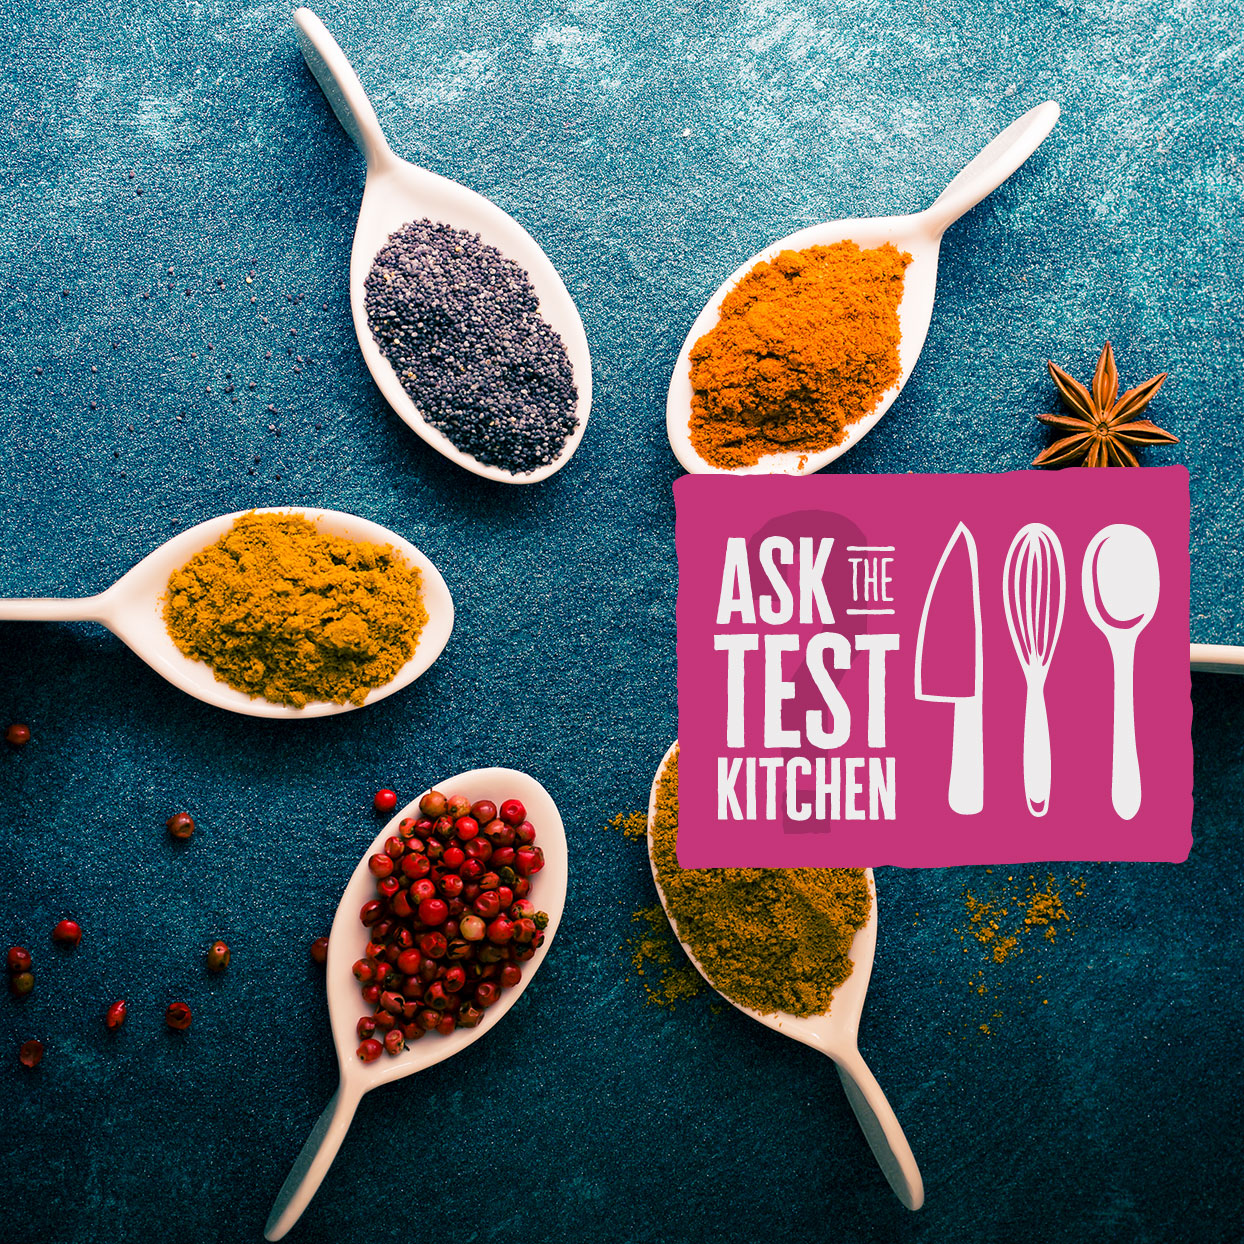 white spoons with spices and an Ask the Text Kitchen logo